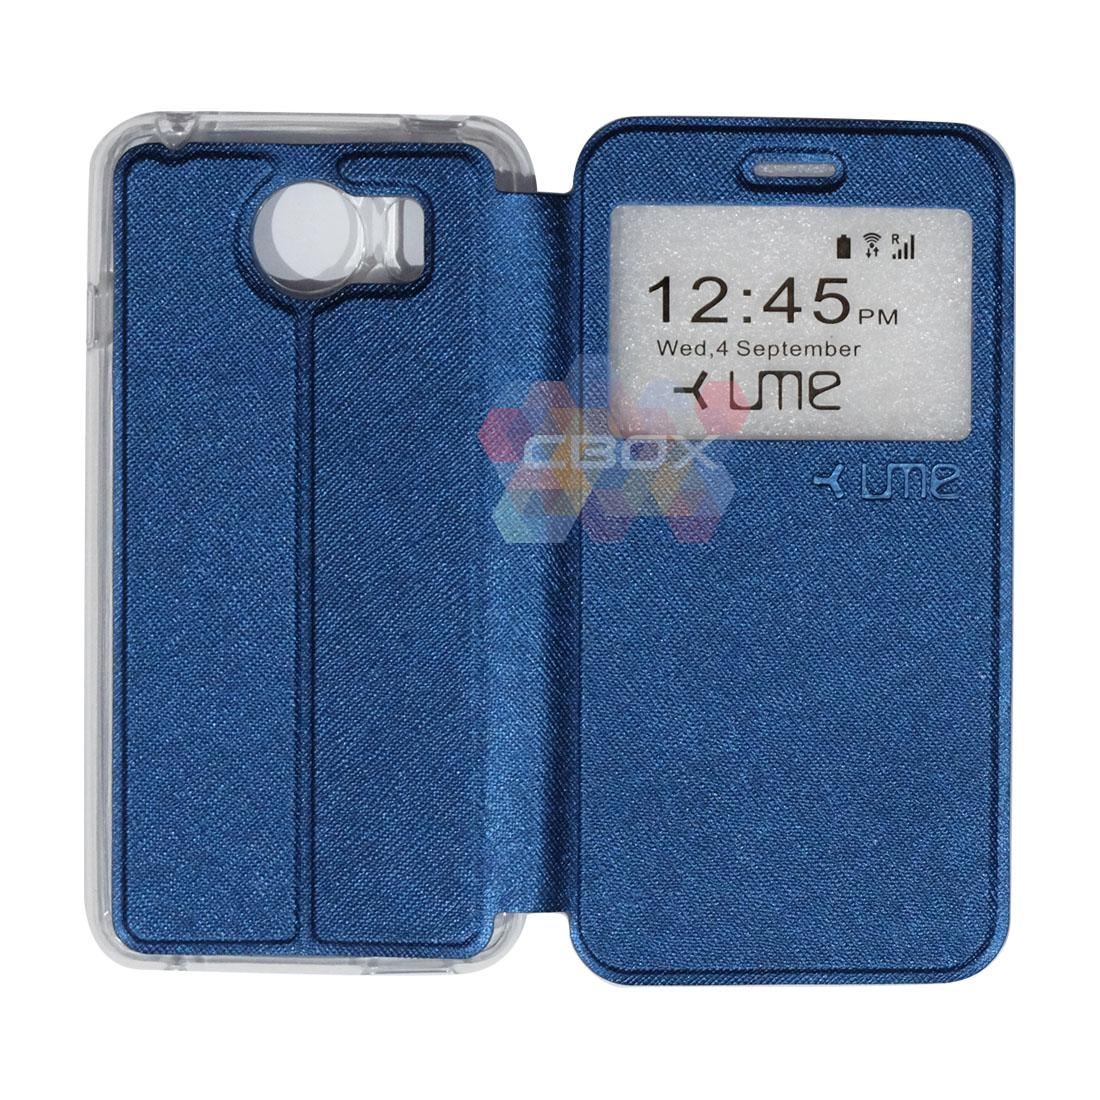 Ume Flipshell Leather Phone Himax M1 Sarung Case / Flipshell Ume Himax M1 / Flipcover Ume Himax M1 / Leather Case Ume Himax M1 / Sarung HP Himax M1 / Flipshell Himax M1 / Flipcover Himax M1 / Casing Himax M1 - Biru Tua